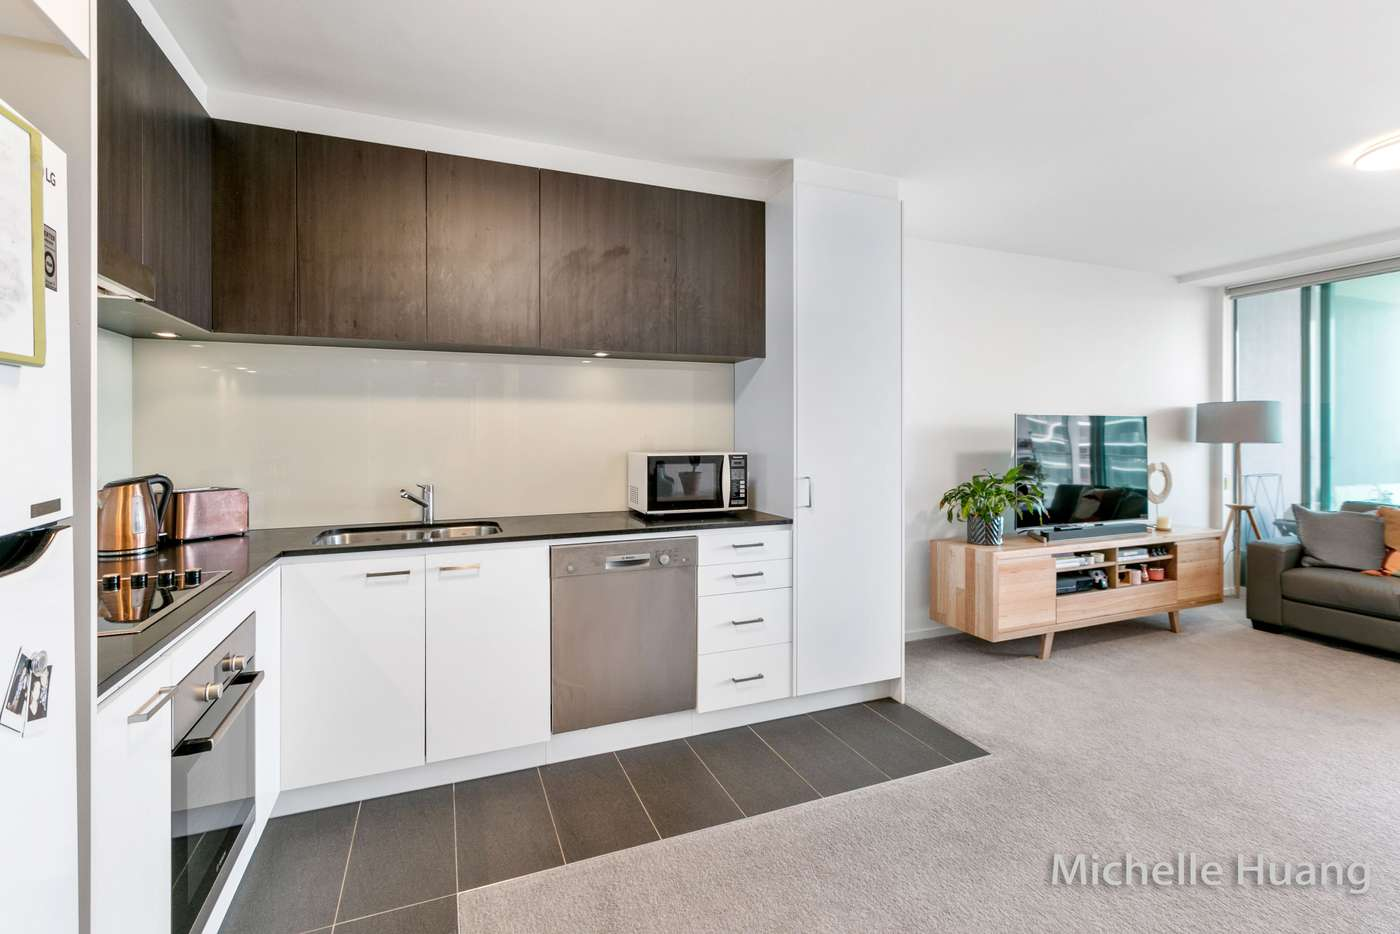 Seventh view of Homely apartment listing, 1810/30 Festival Place, Newstead QLD 4006